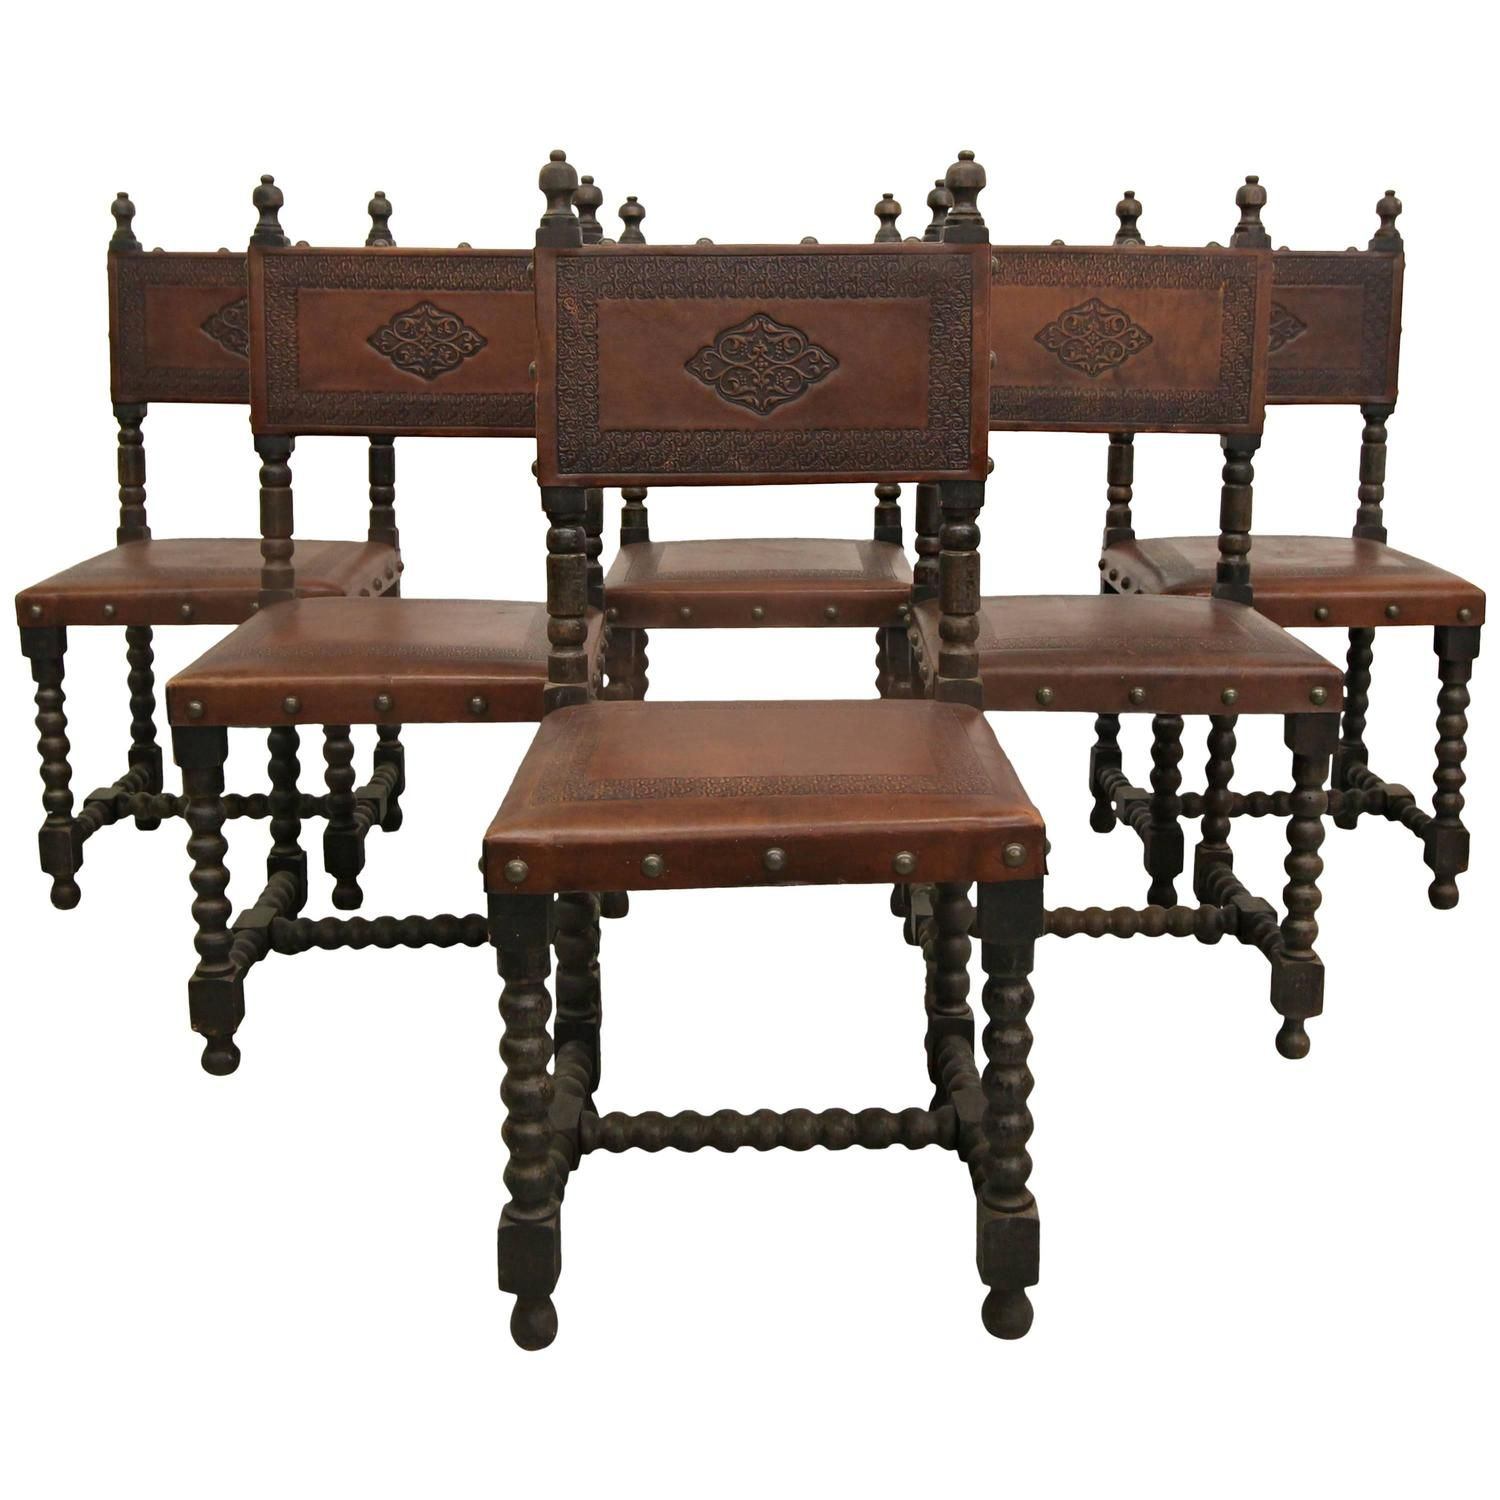 Shop Spanish Colonial seating at the world's largest source of Spanish  Colonial and other authentic period furniture. - Set Of Six Antique Spanish Colonial Stamped Leather Dining Chairs